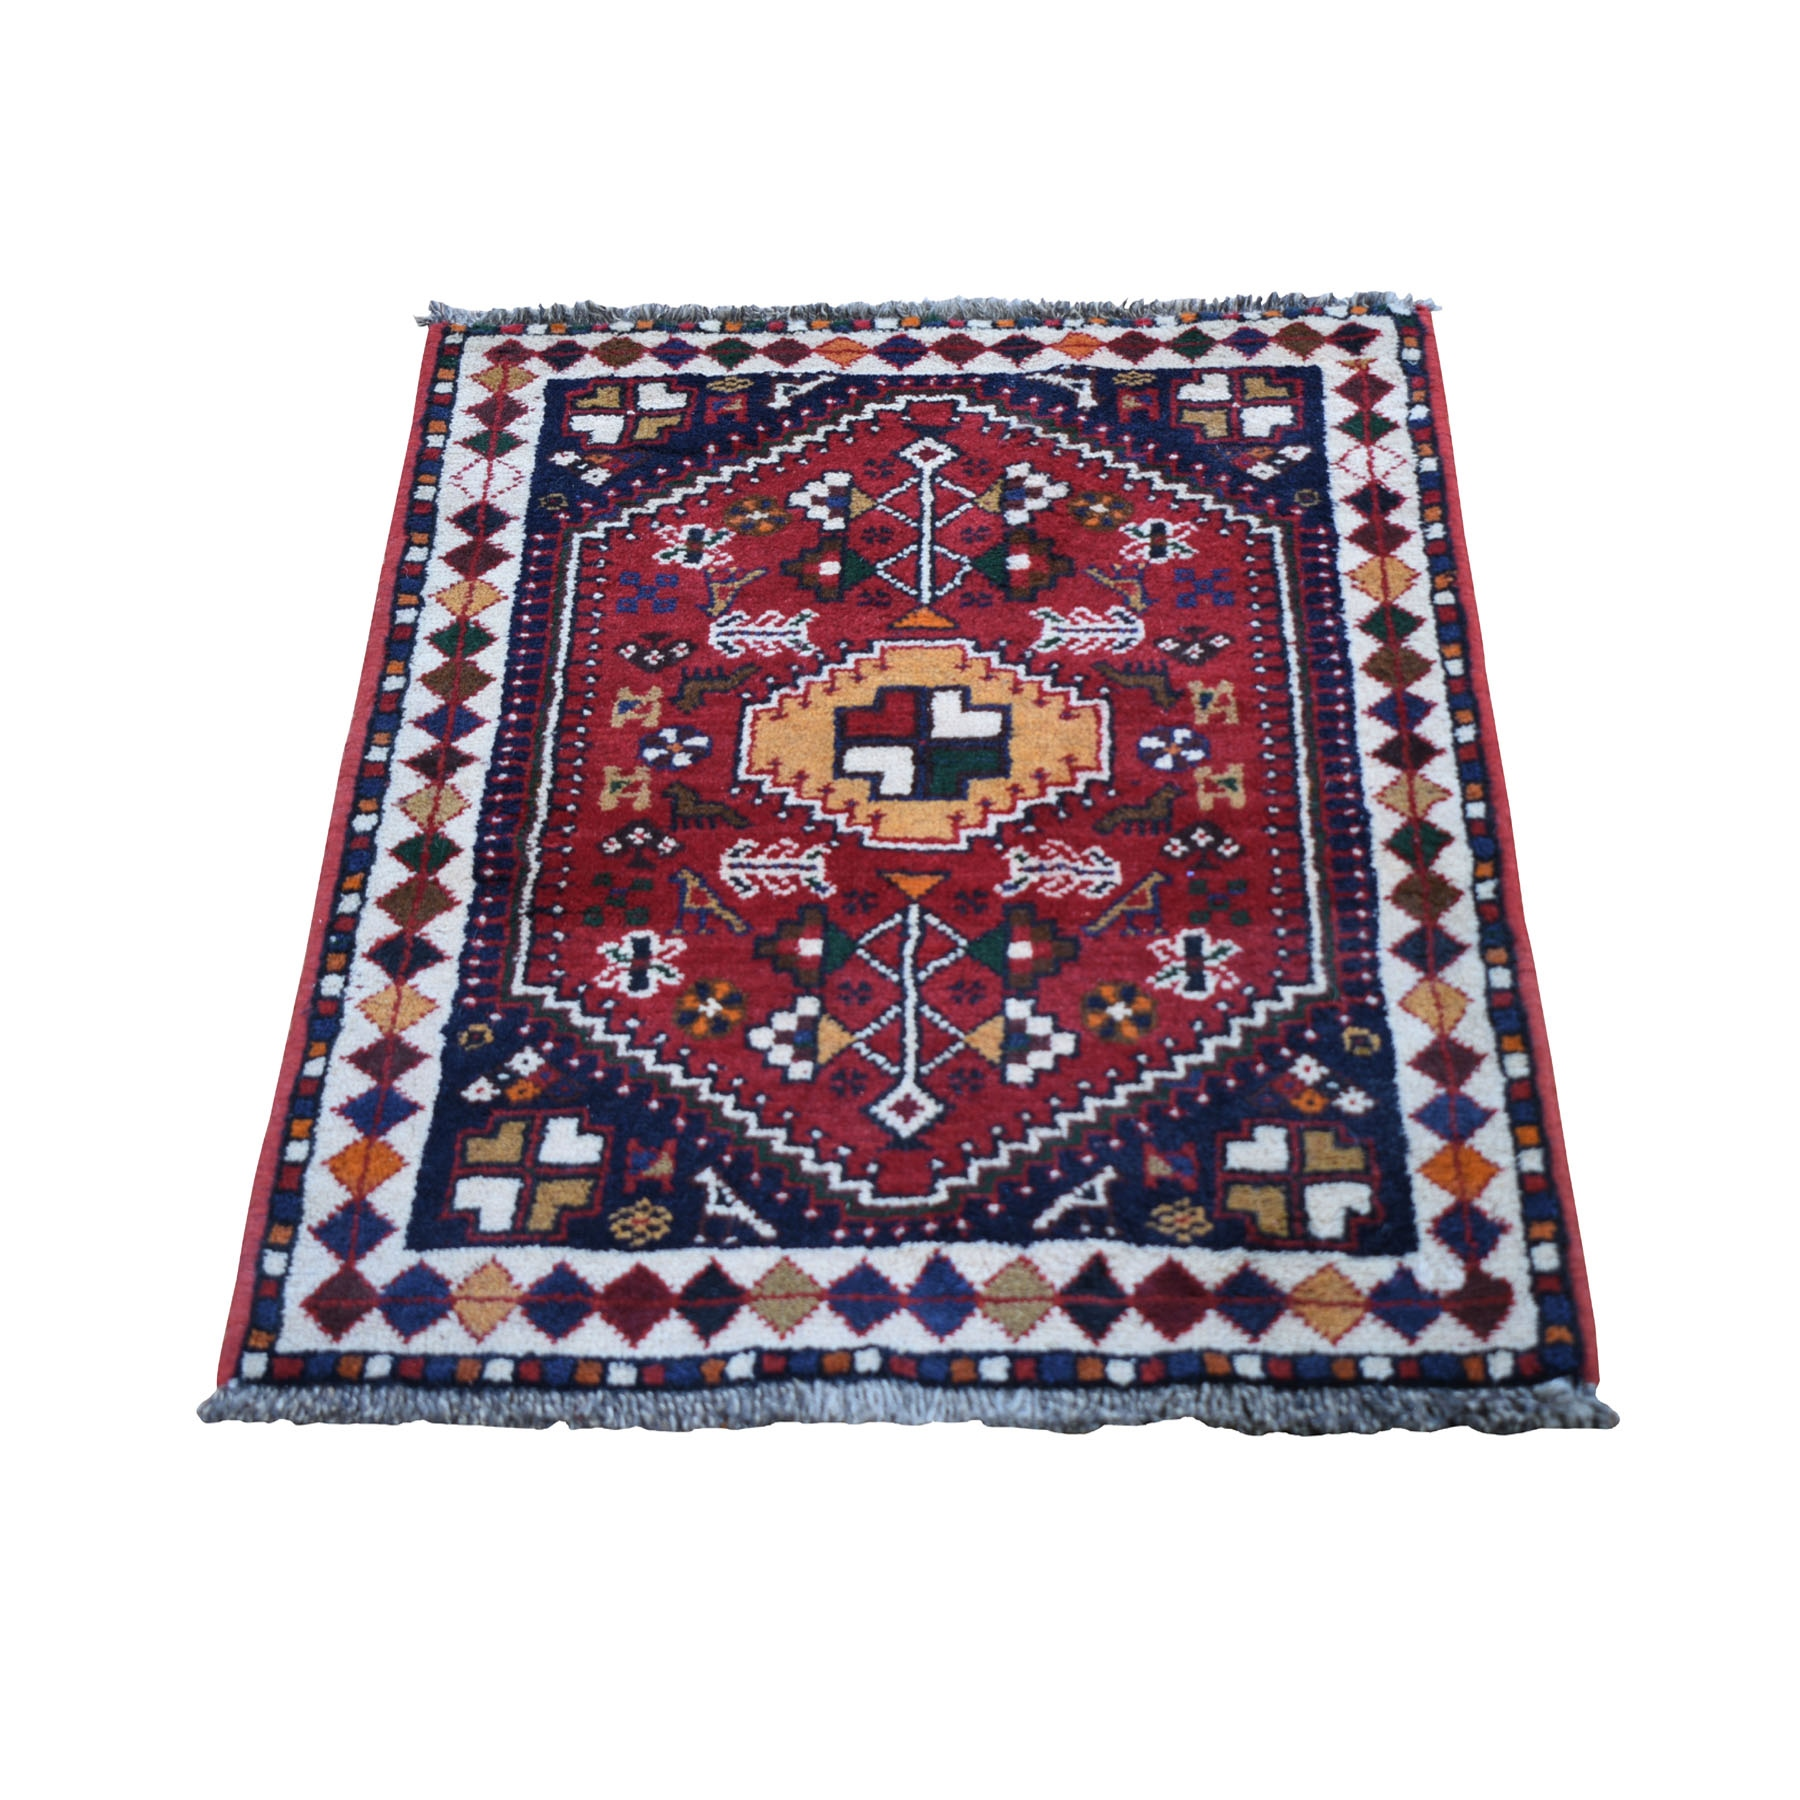 "2'3""x3' Red New Persian Shiraz With Figurines Hand Knotted Pure Wool Small Bohemian Rug"